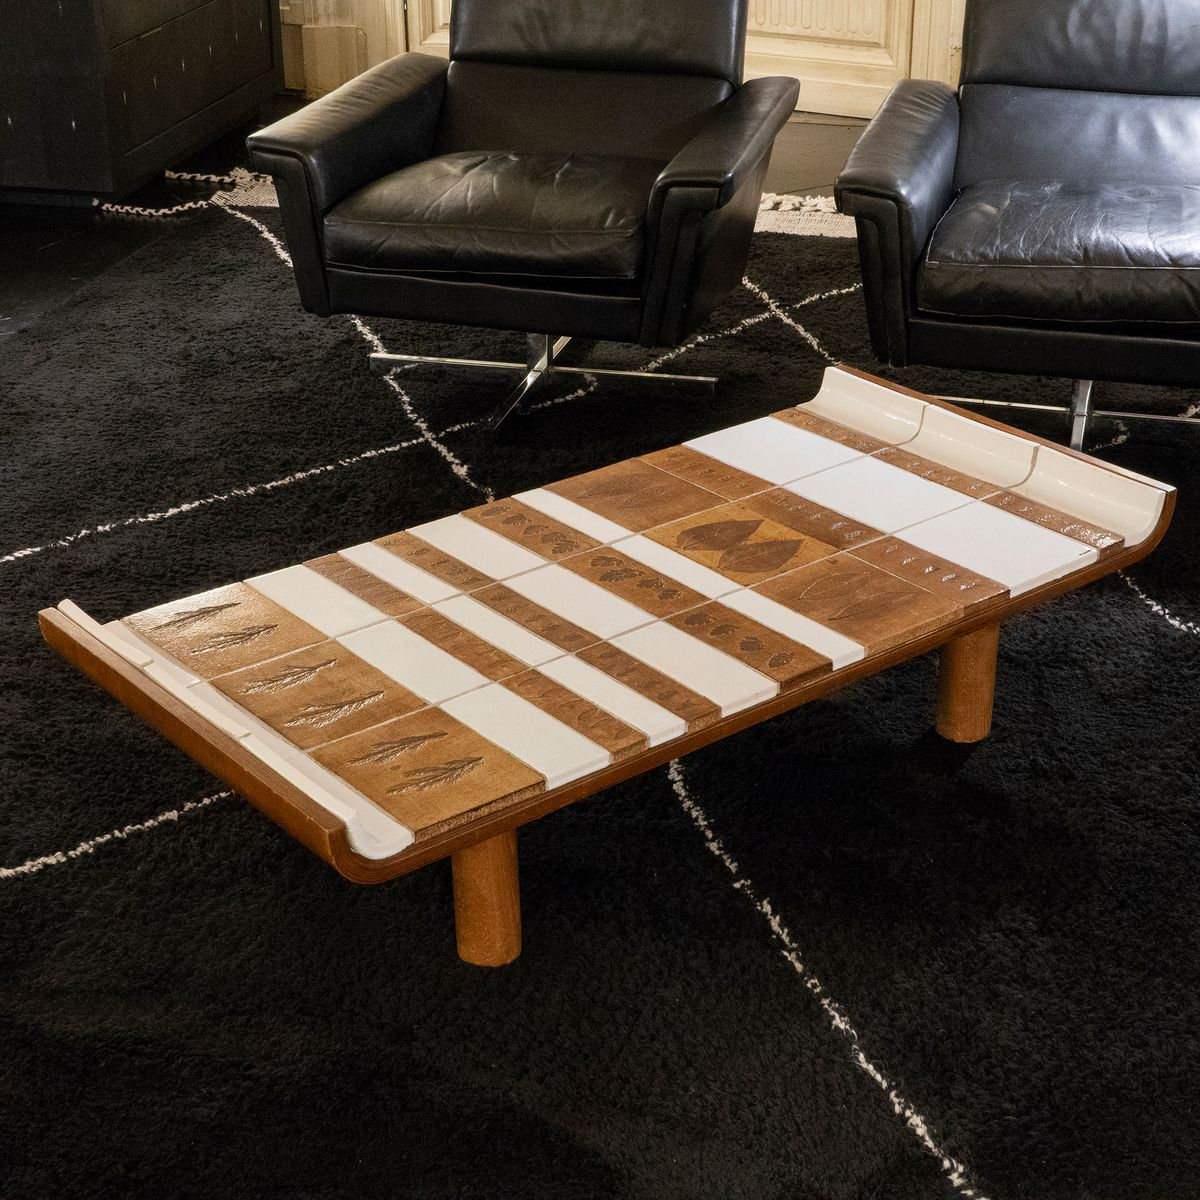 Garrigue Ceramic Tiled Coffee Table By Roger Ca 1960s